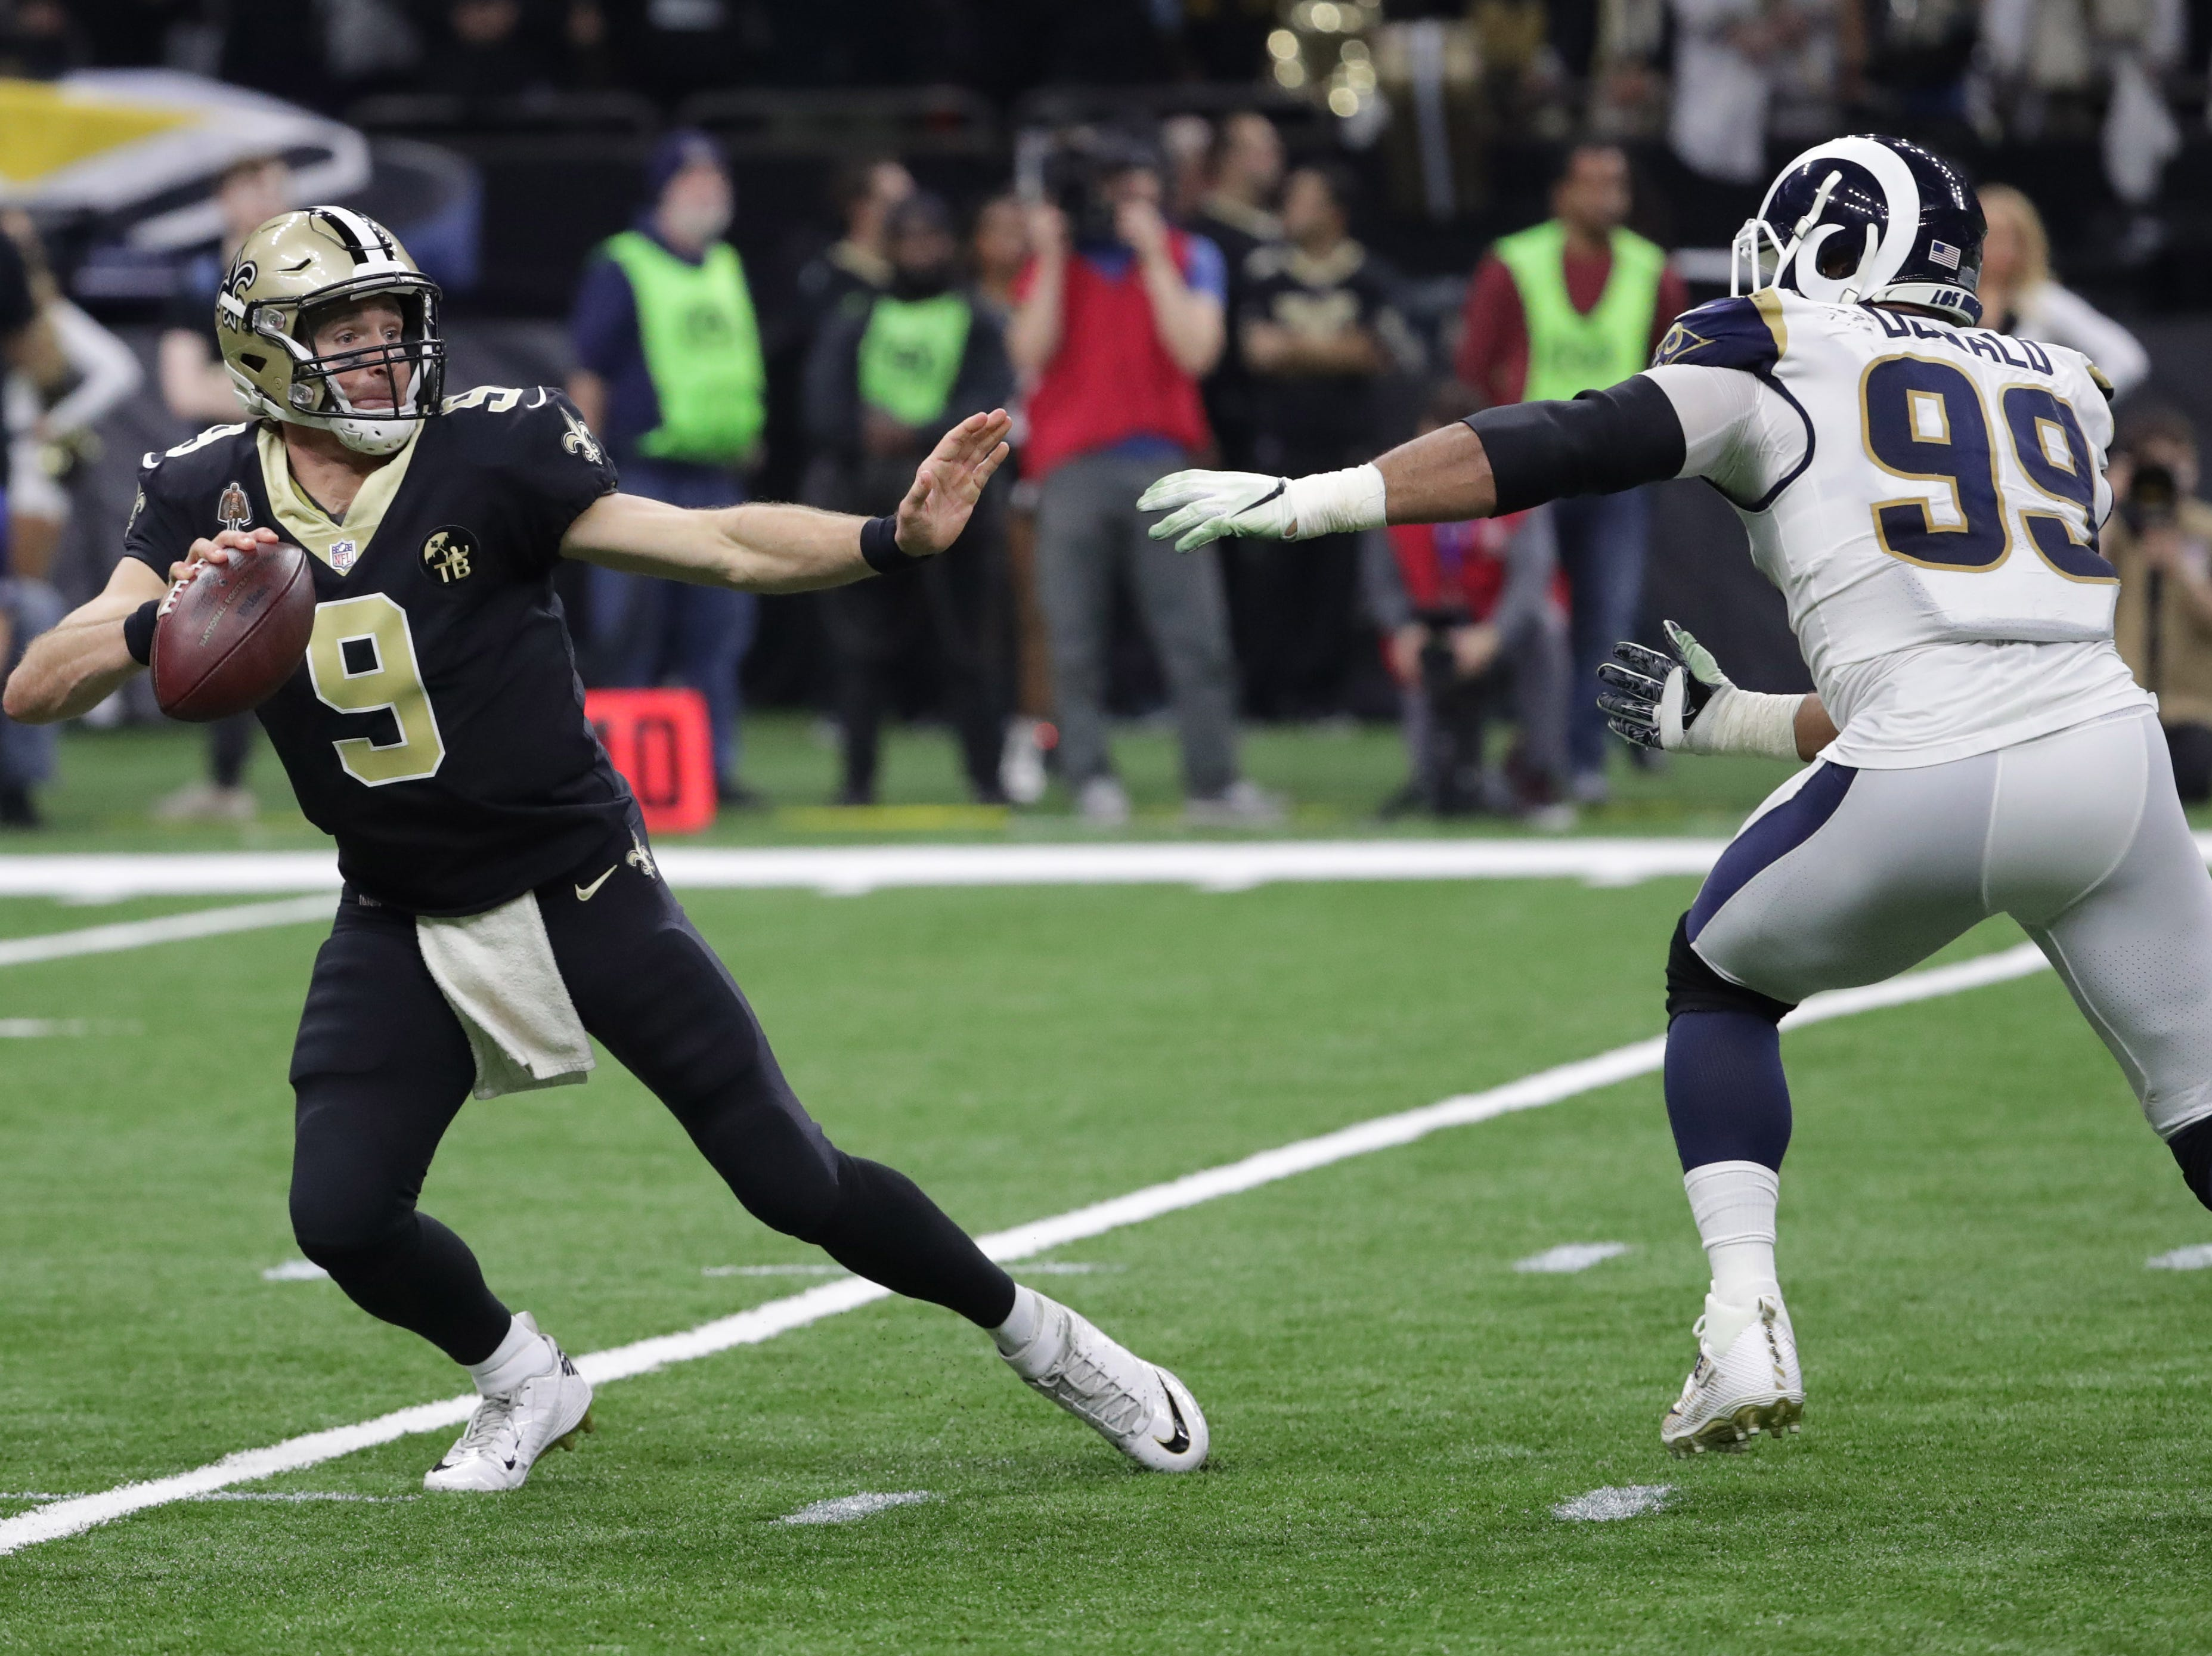 New Orleans Saints quarterback Drew Brees (9) is pressured by Los Angeles Rams defensive end Aaron Donald (99) during the second quarter the NFC Championship game at Mercedes-Benz Superdome.